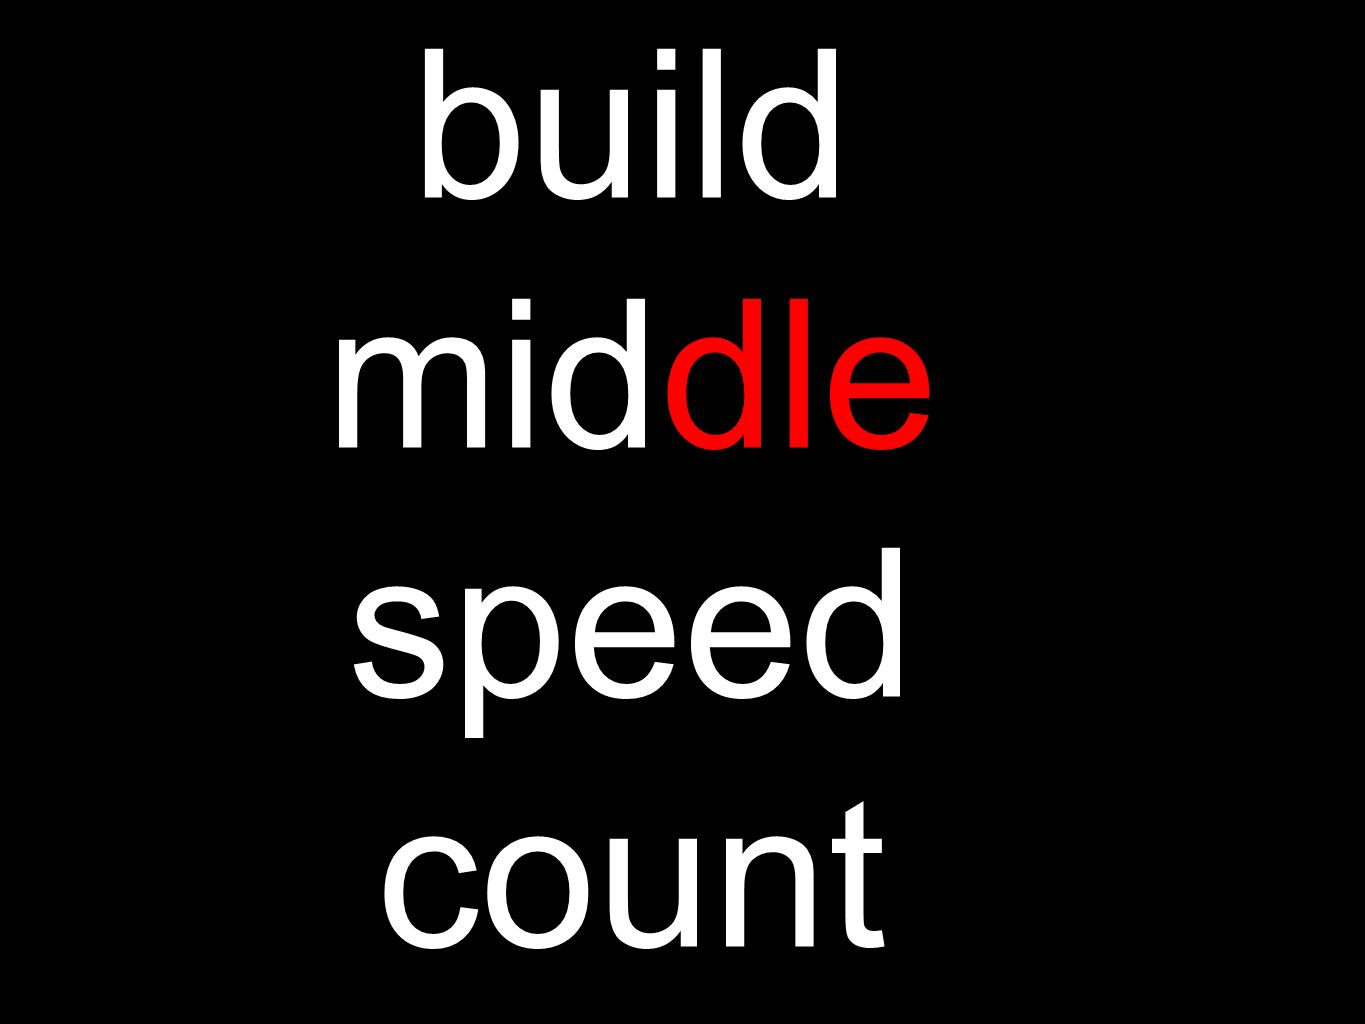 build middle speed count